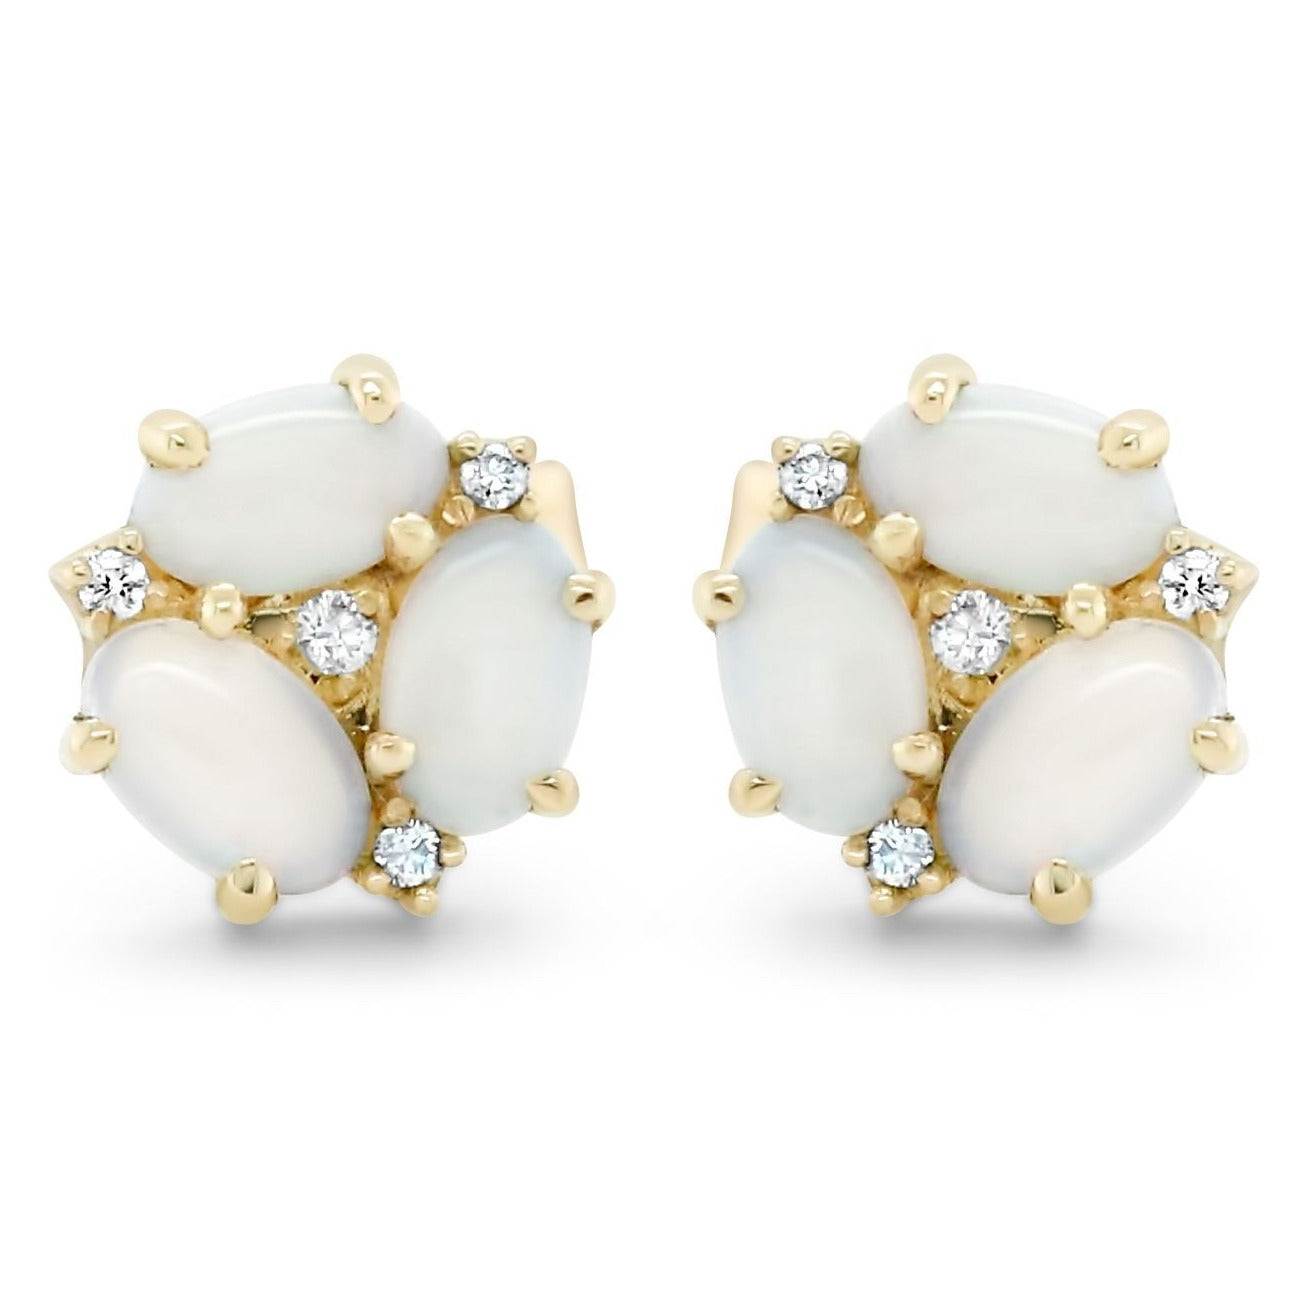 14k yellow gold opal and diamond cluster stud earrings